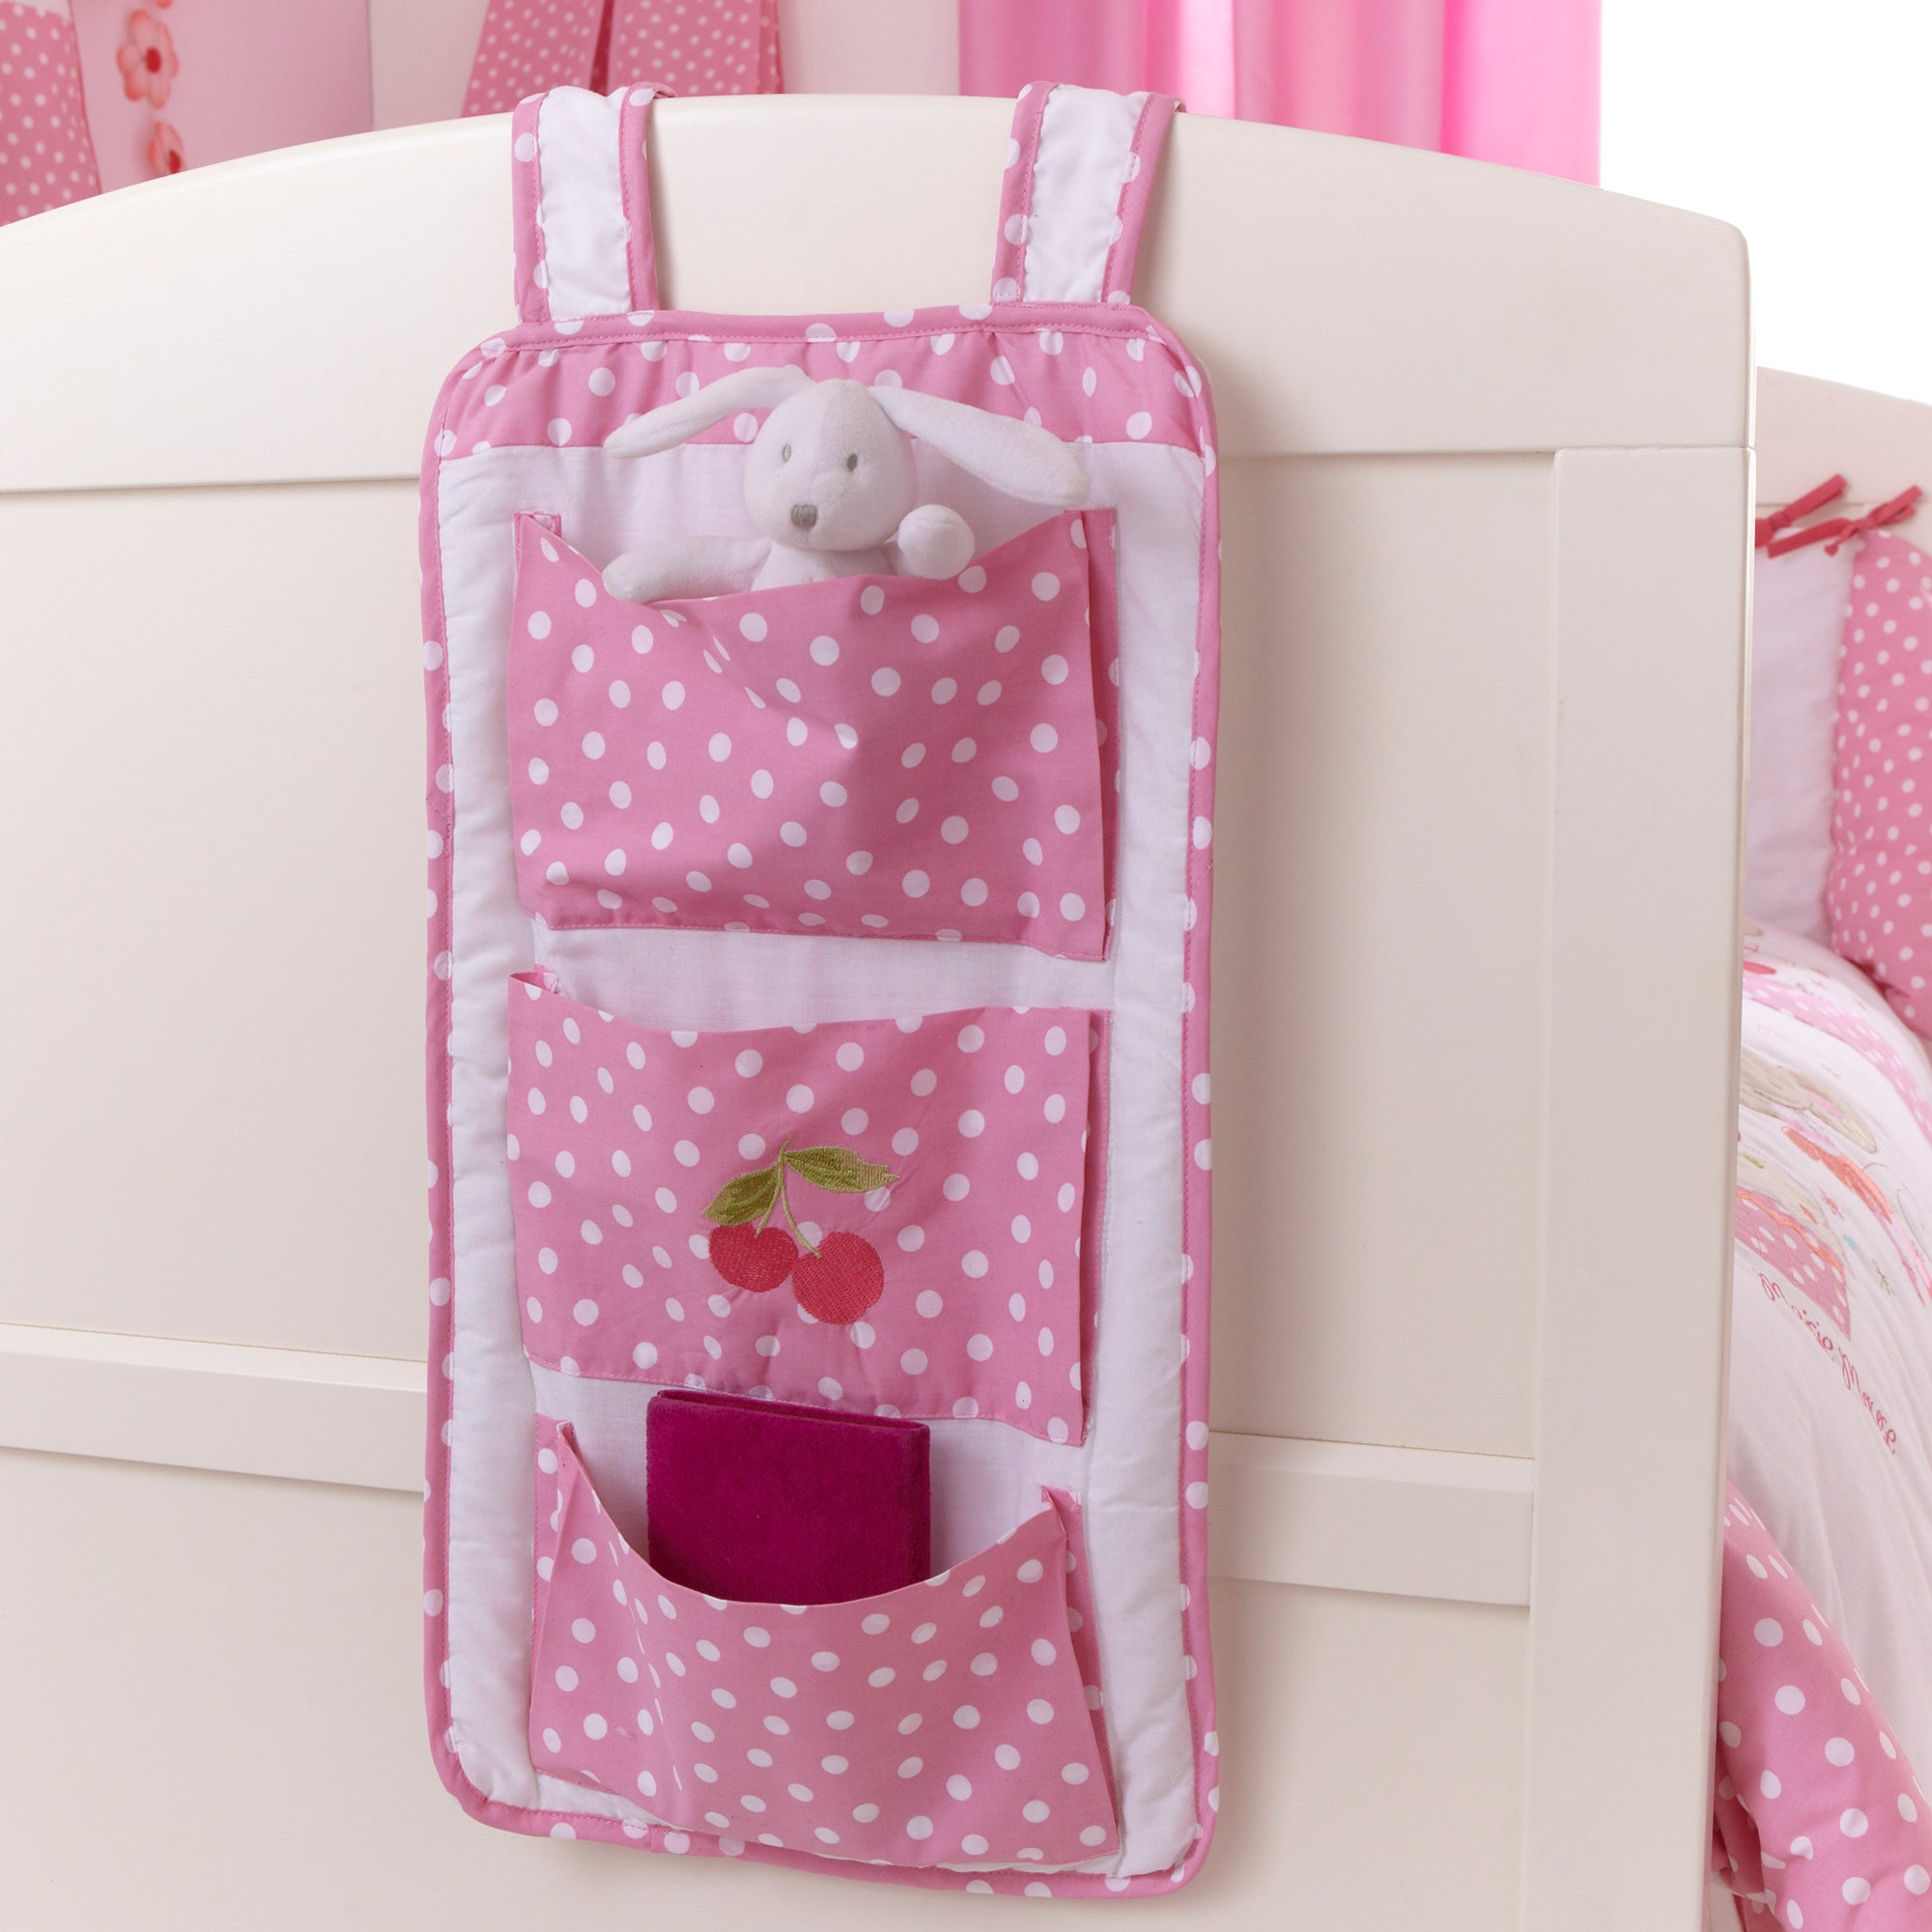 Kids Maisie Mouse Collection Cot Organiser